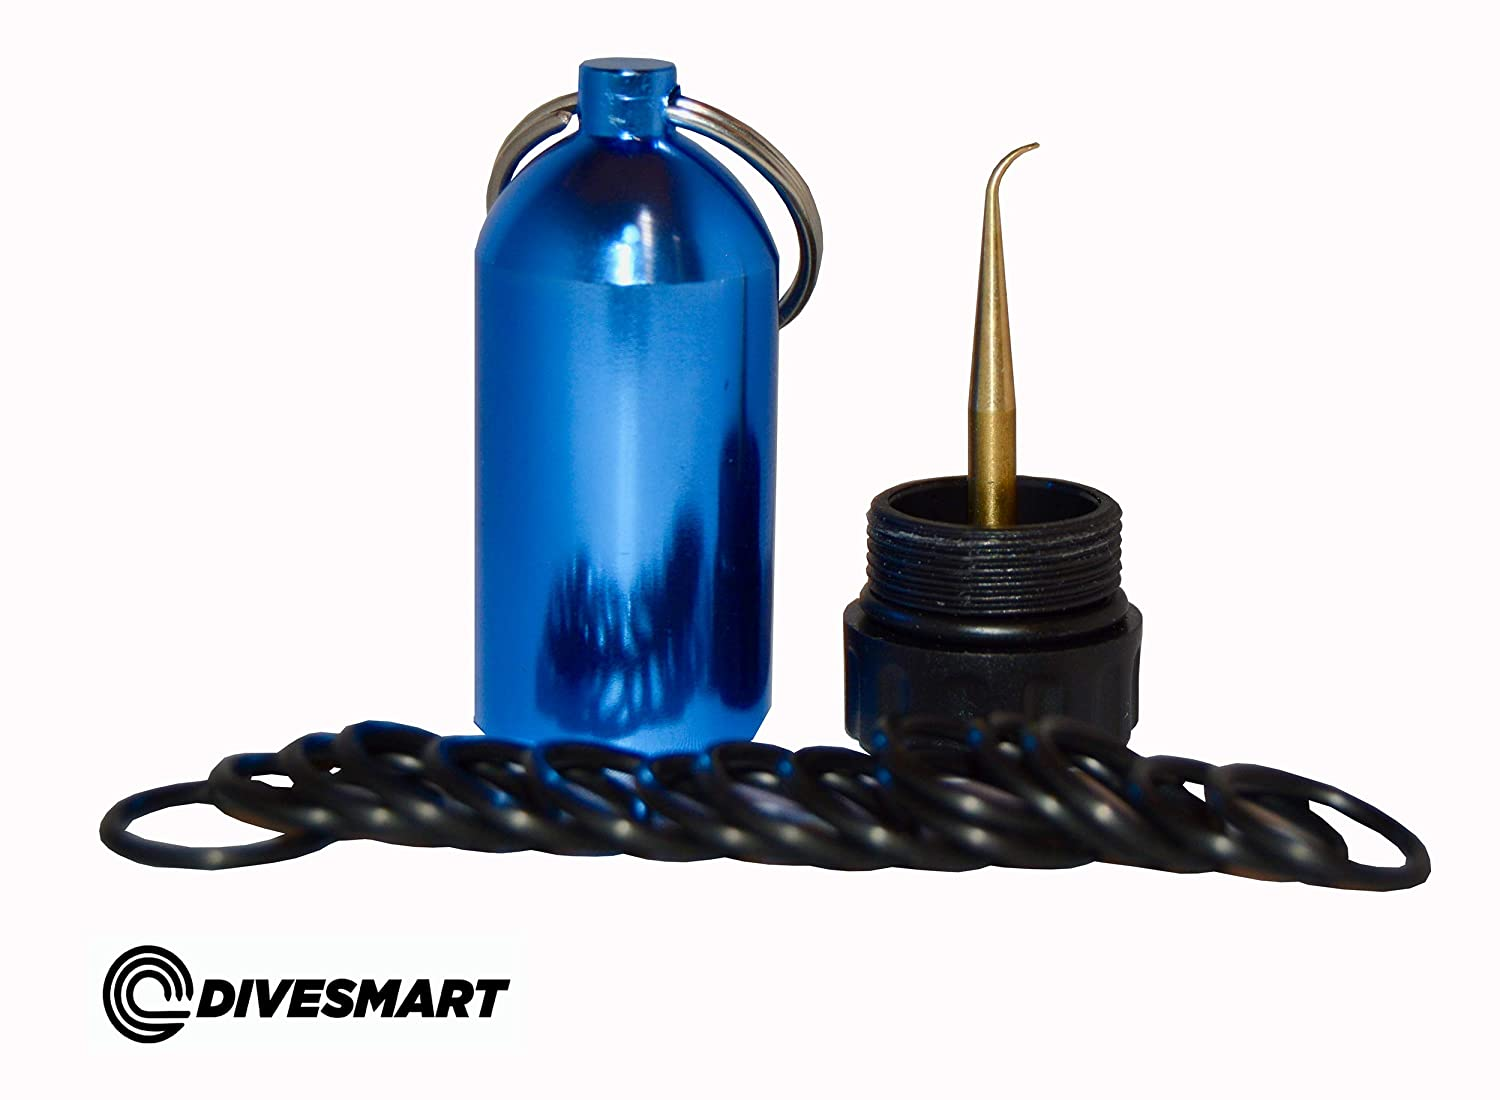 DiveSmart Scuba Diving Mini Tank Keychain with 15 O-Rings and Brass Pick